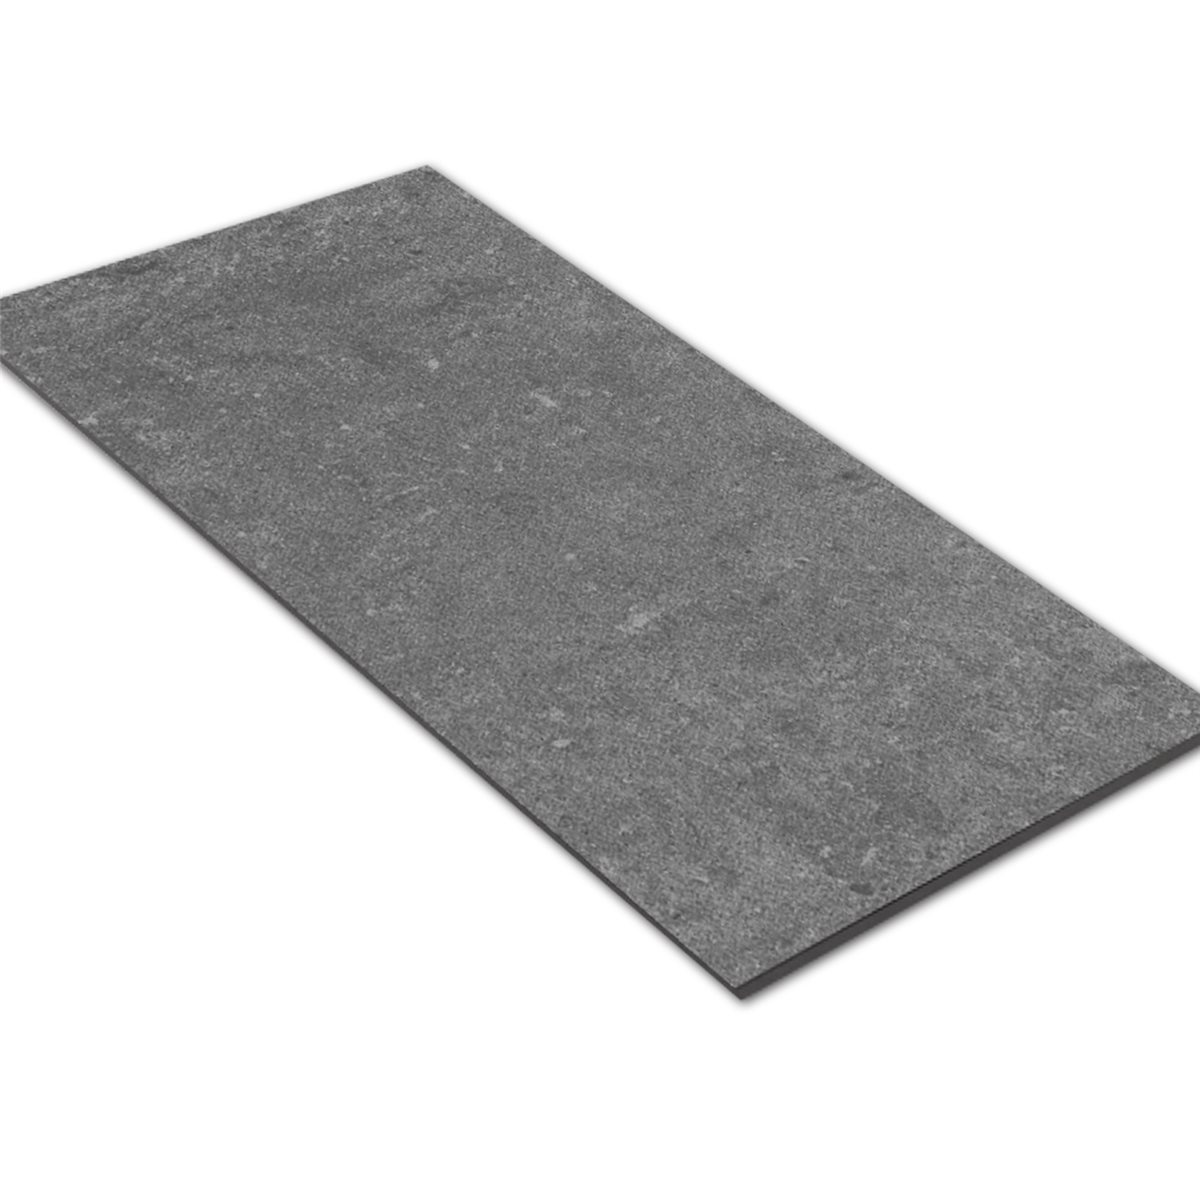 Carrelage Gris Anthracite Salissant Carrelage 30x60 Gris Anthracite Stunning Carrelage With